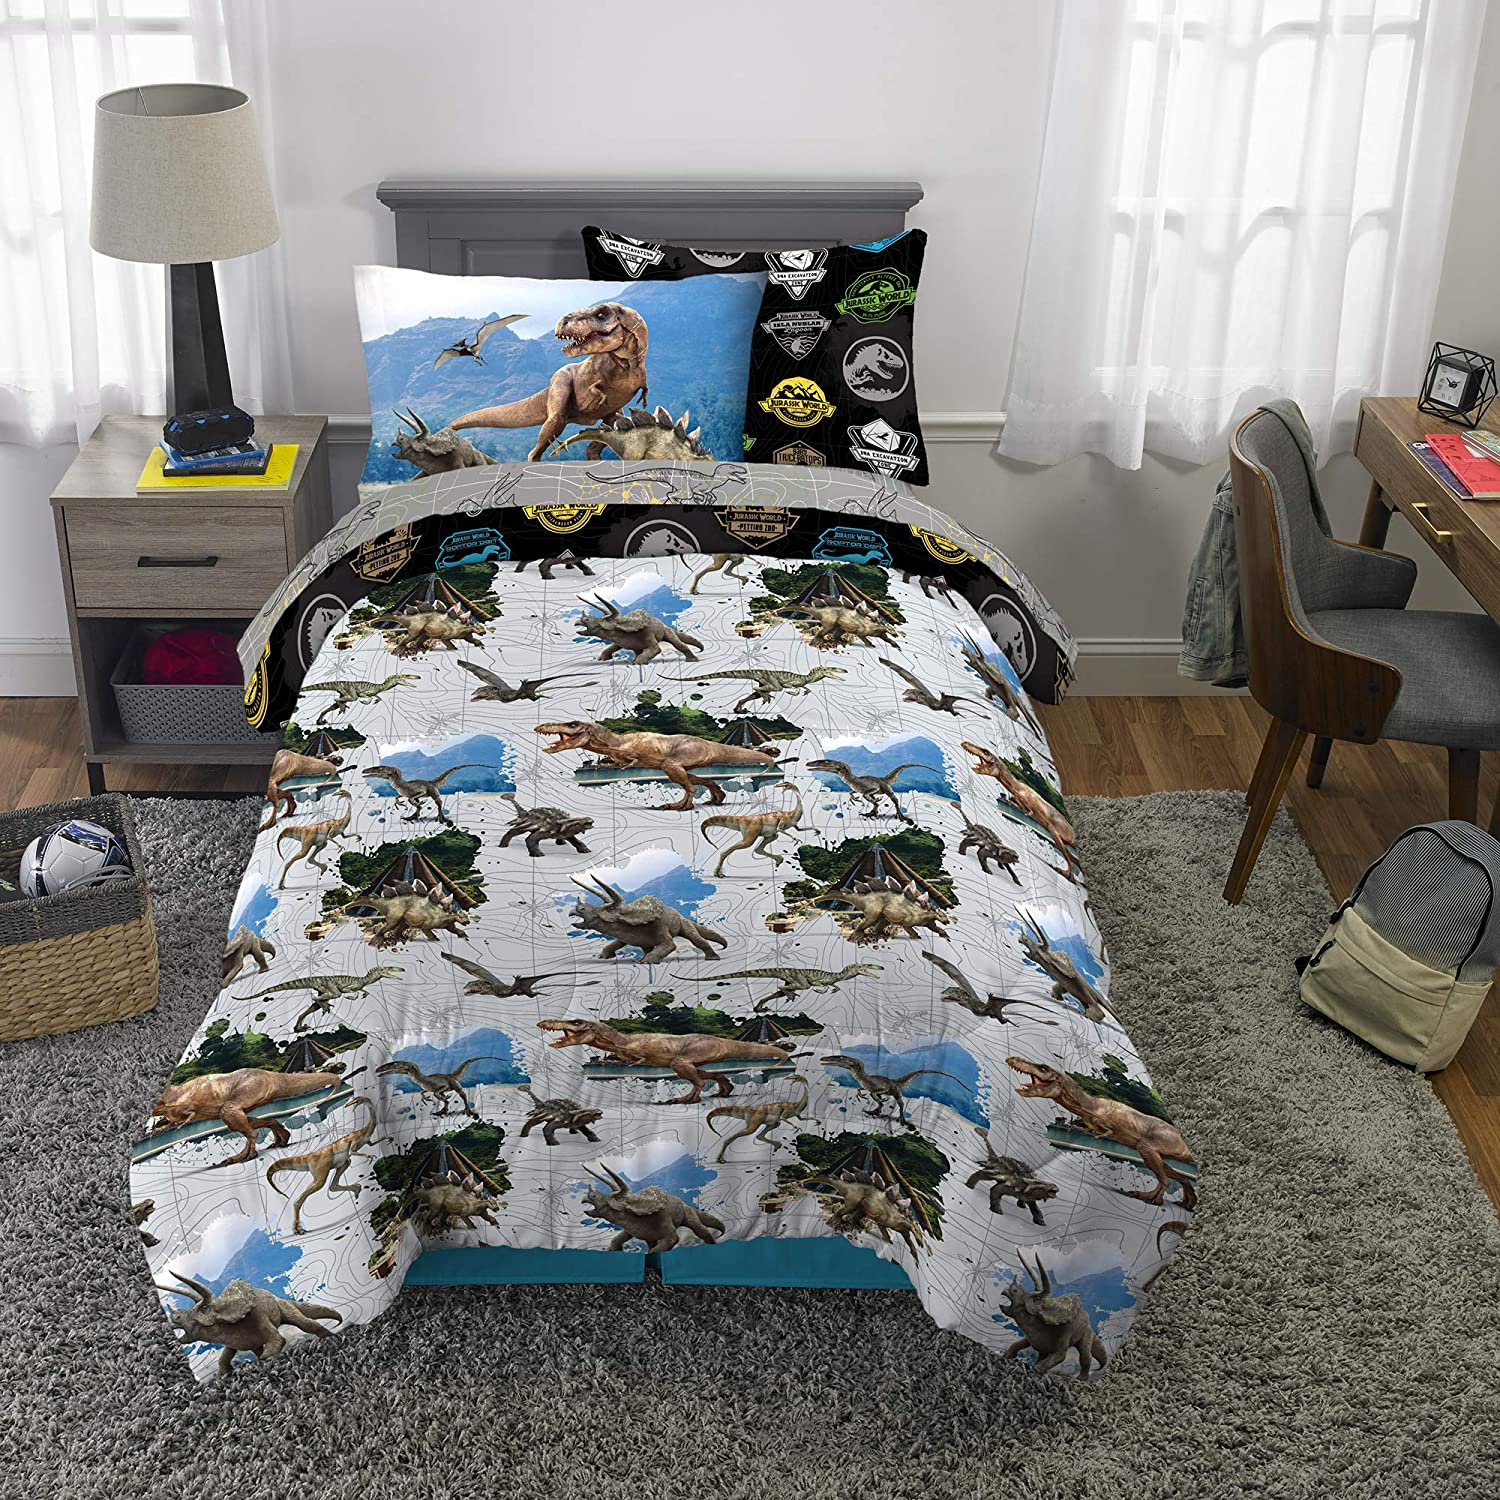 Franco Kids Bedding Super Soft Comforter and Sheet Set with Bonus Sham, 5 Piece Twin Size, Jurassic World